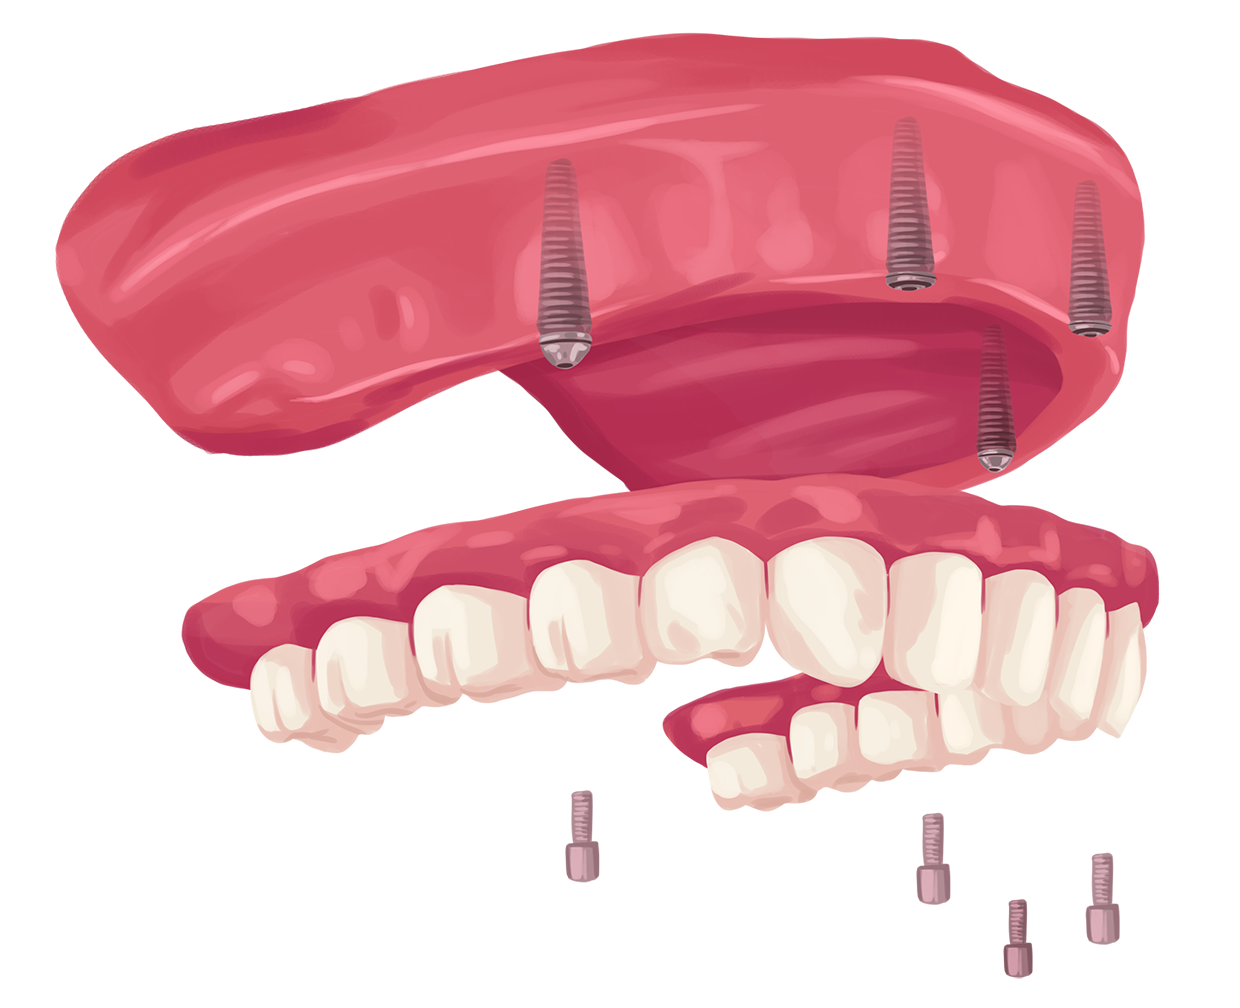 How much are dental implants? - G4 by Golpa